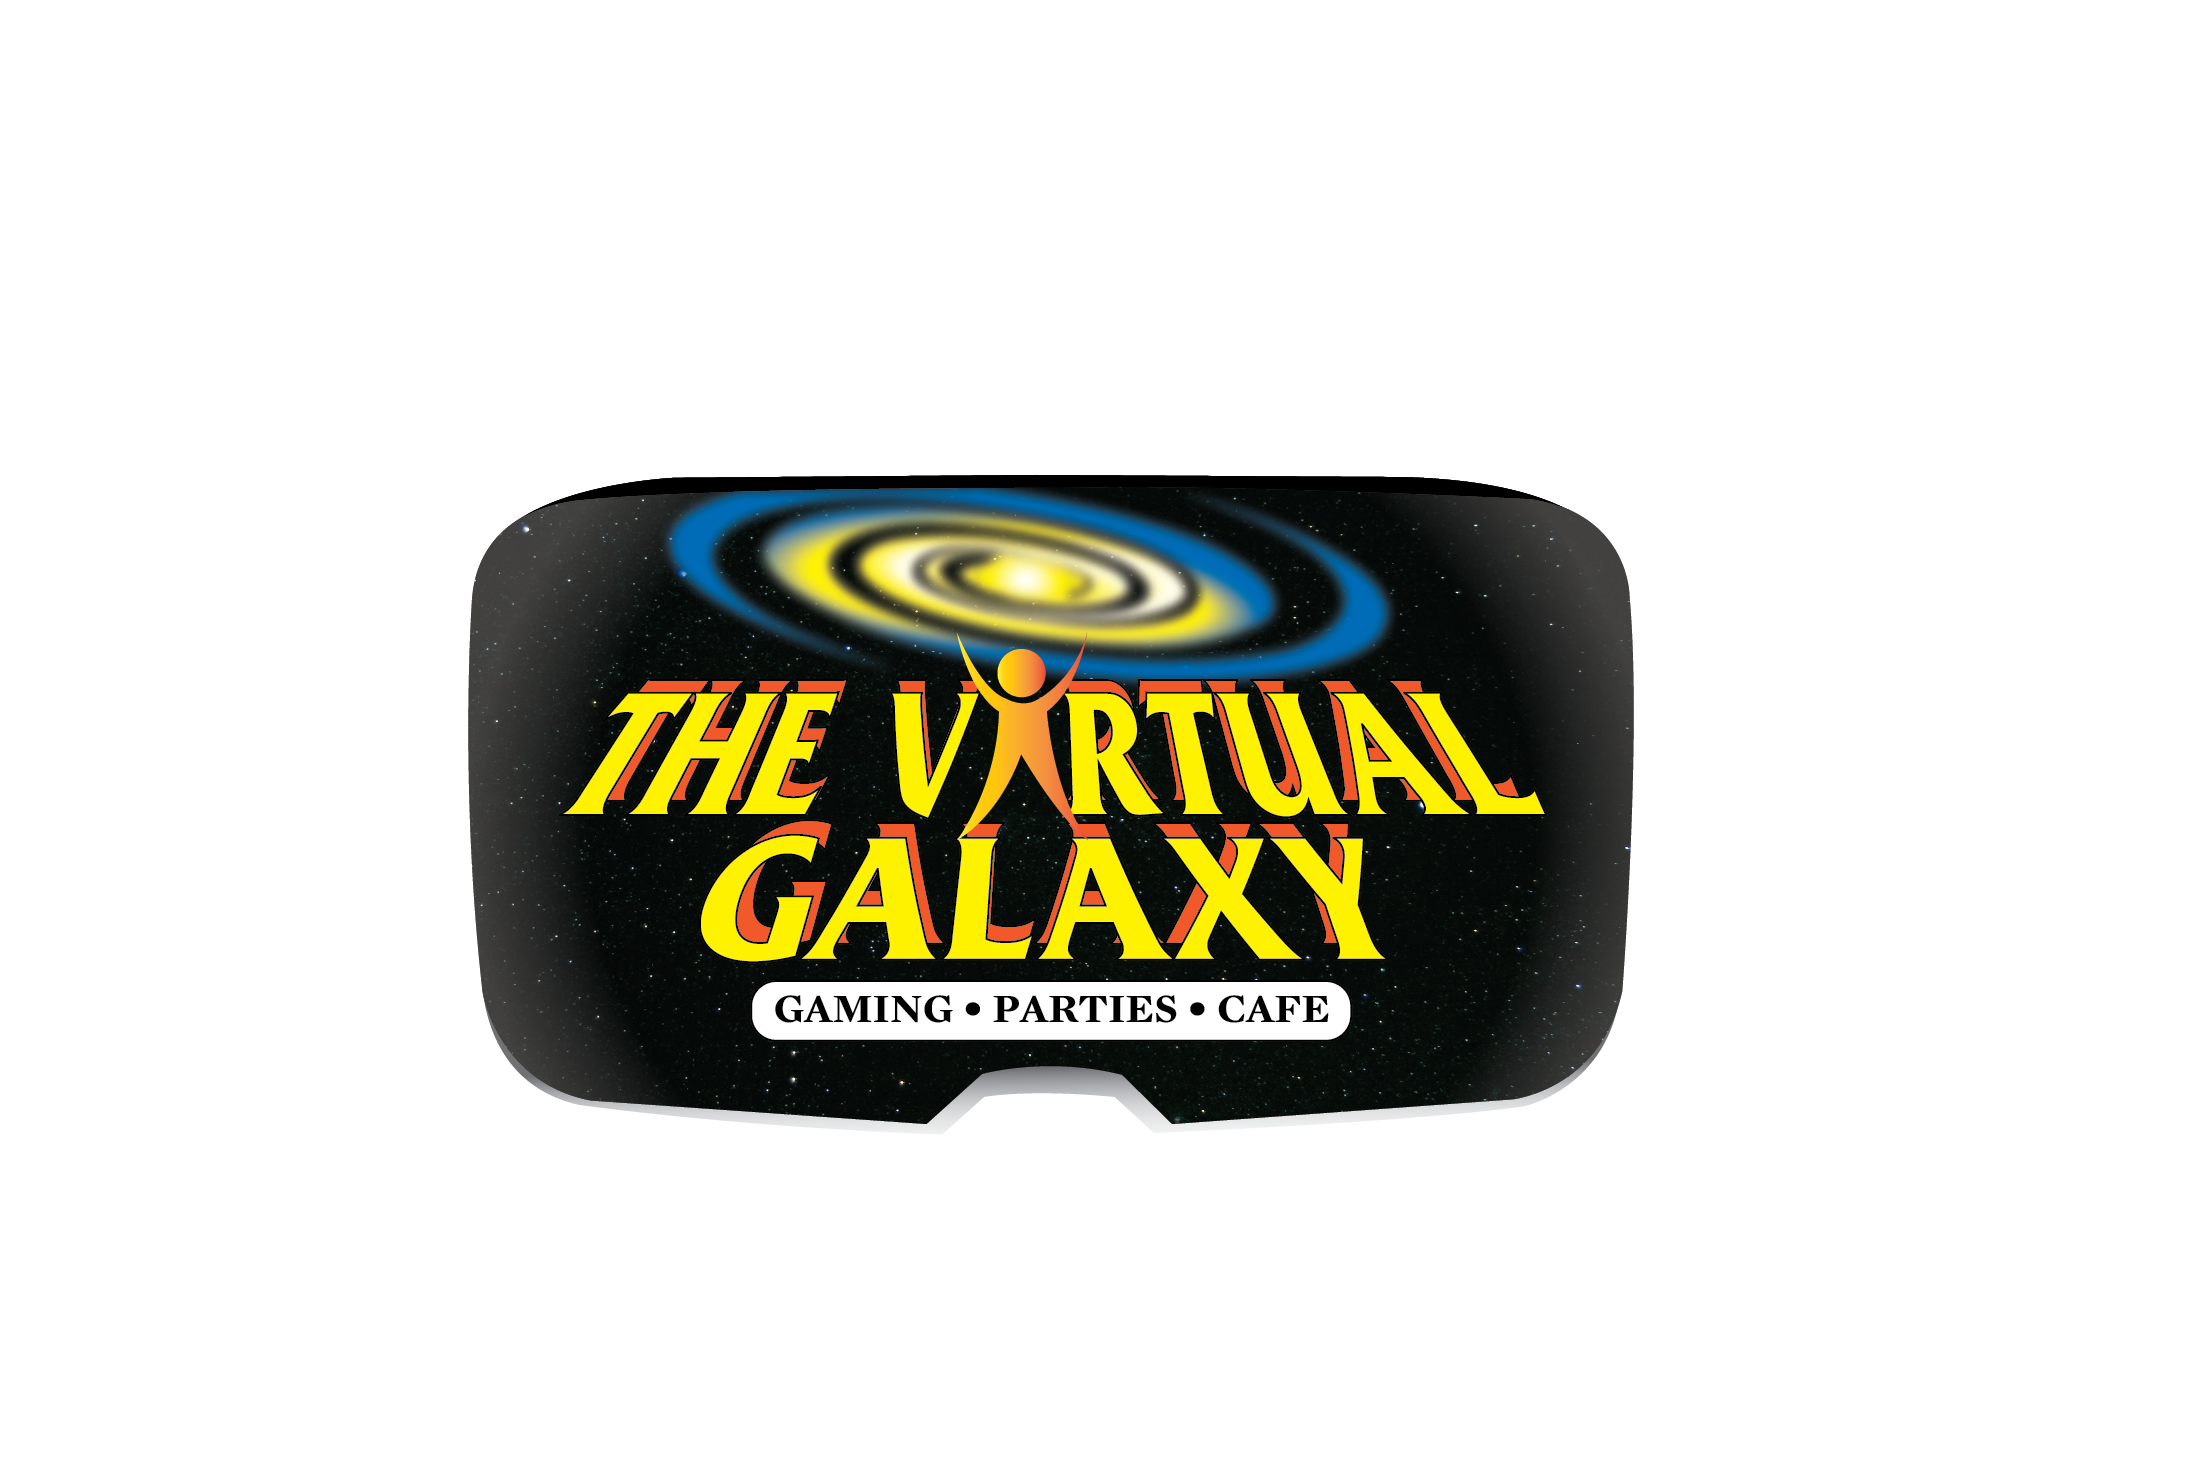 The Virtual Galaxy